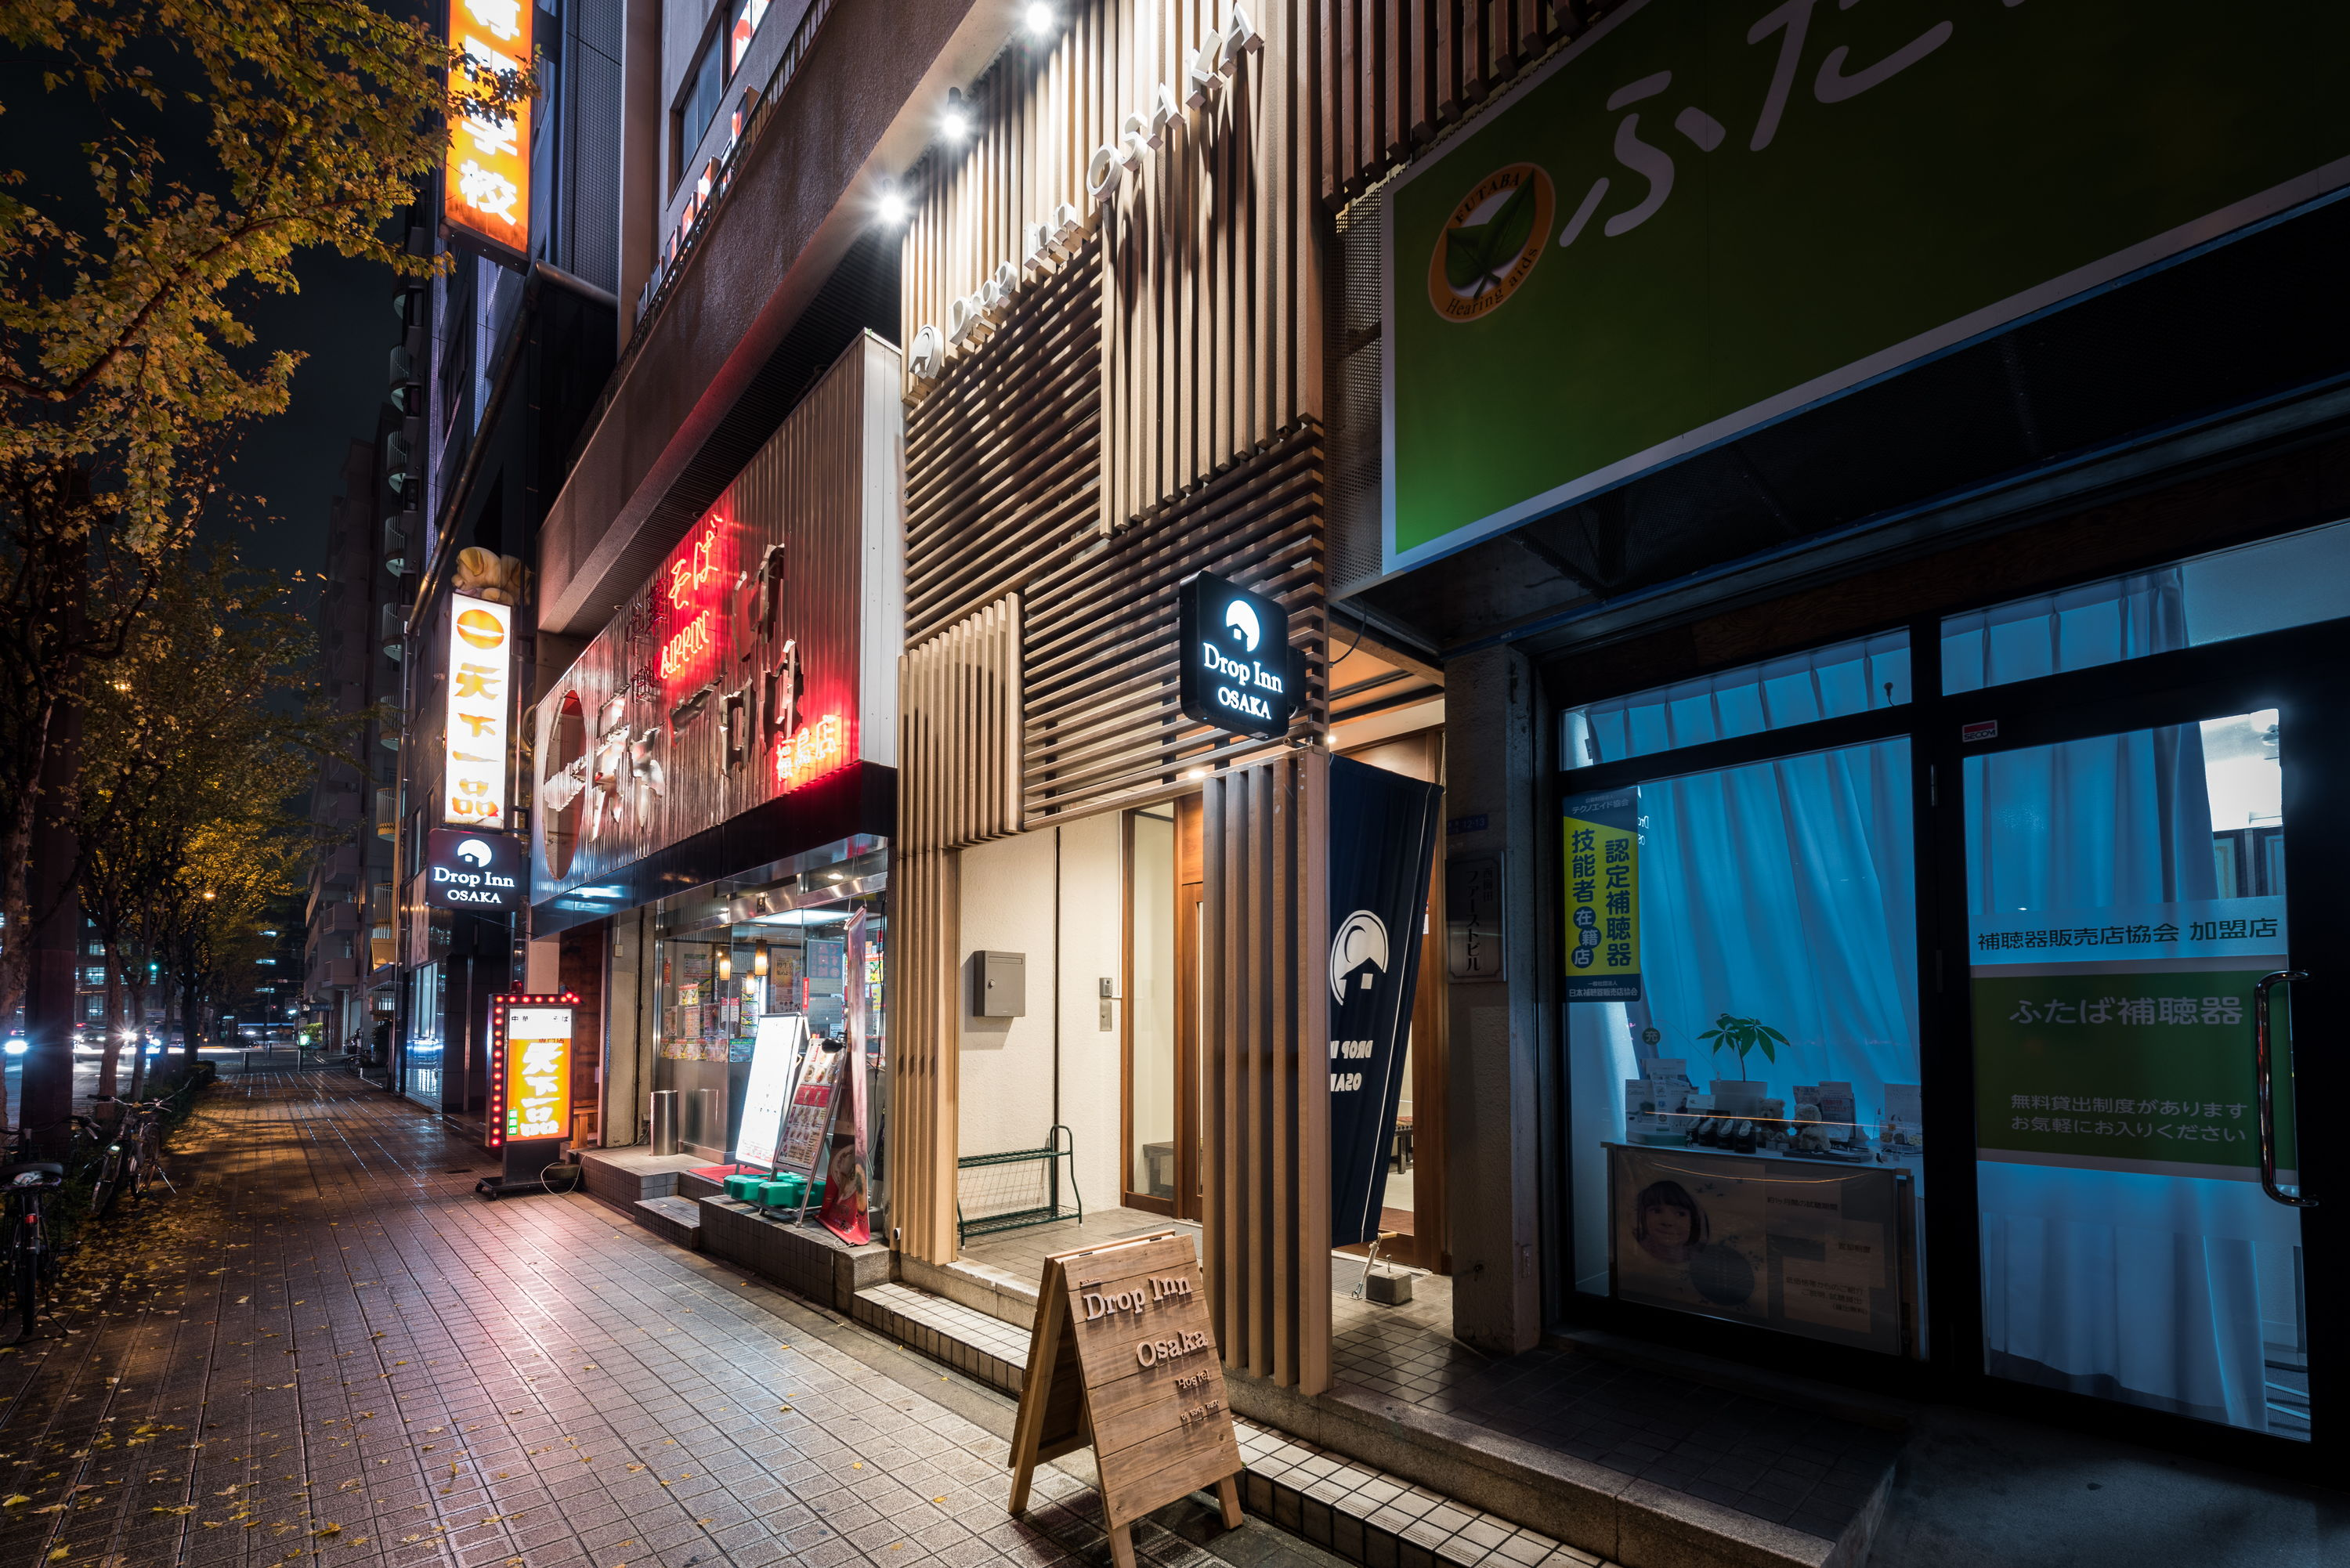 HOSTEL - Drop Inn Osaka